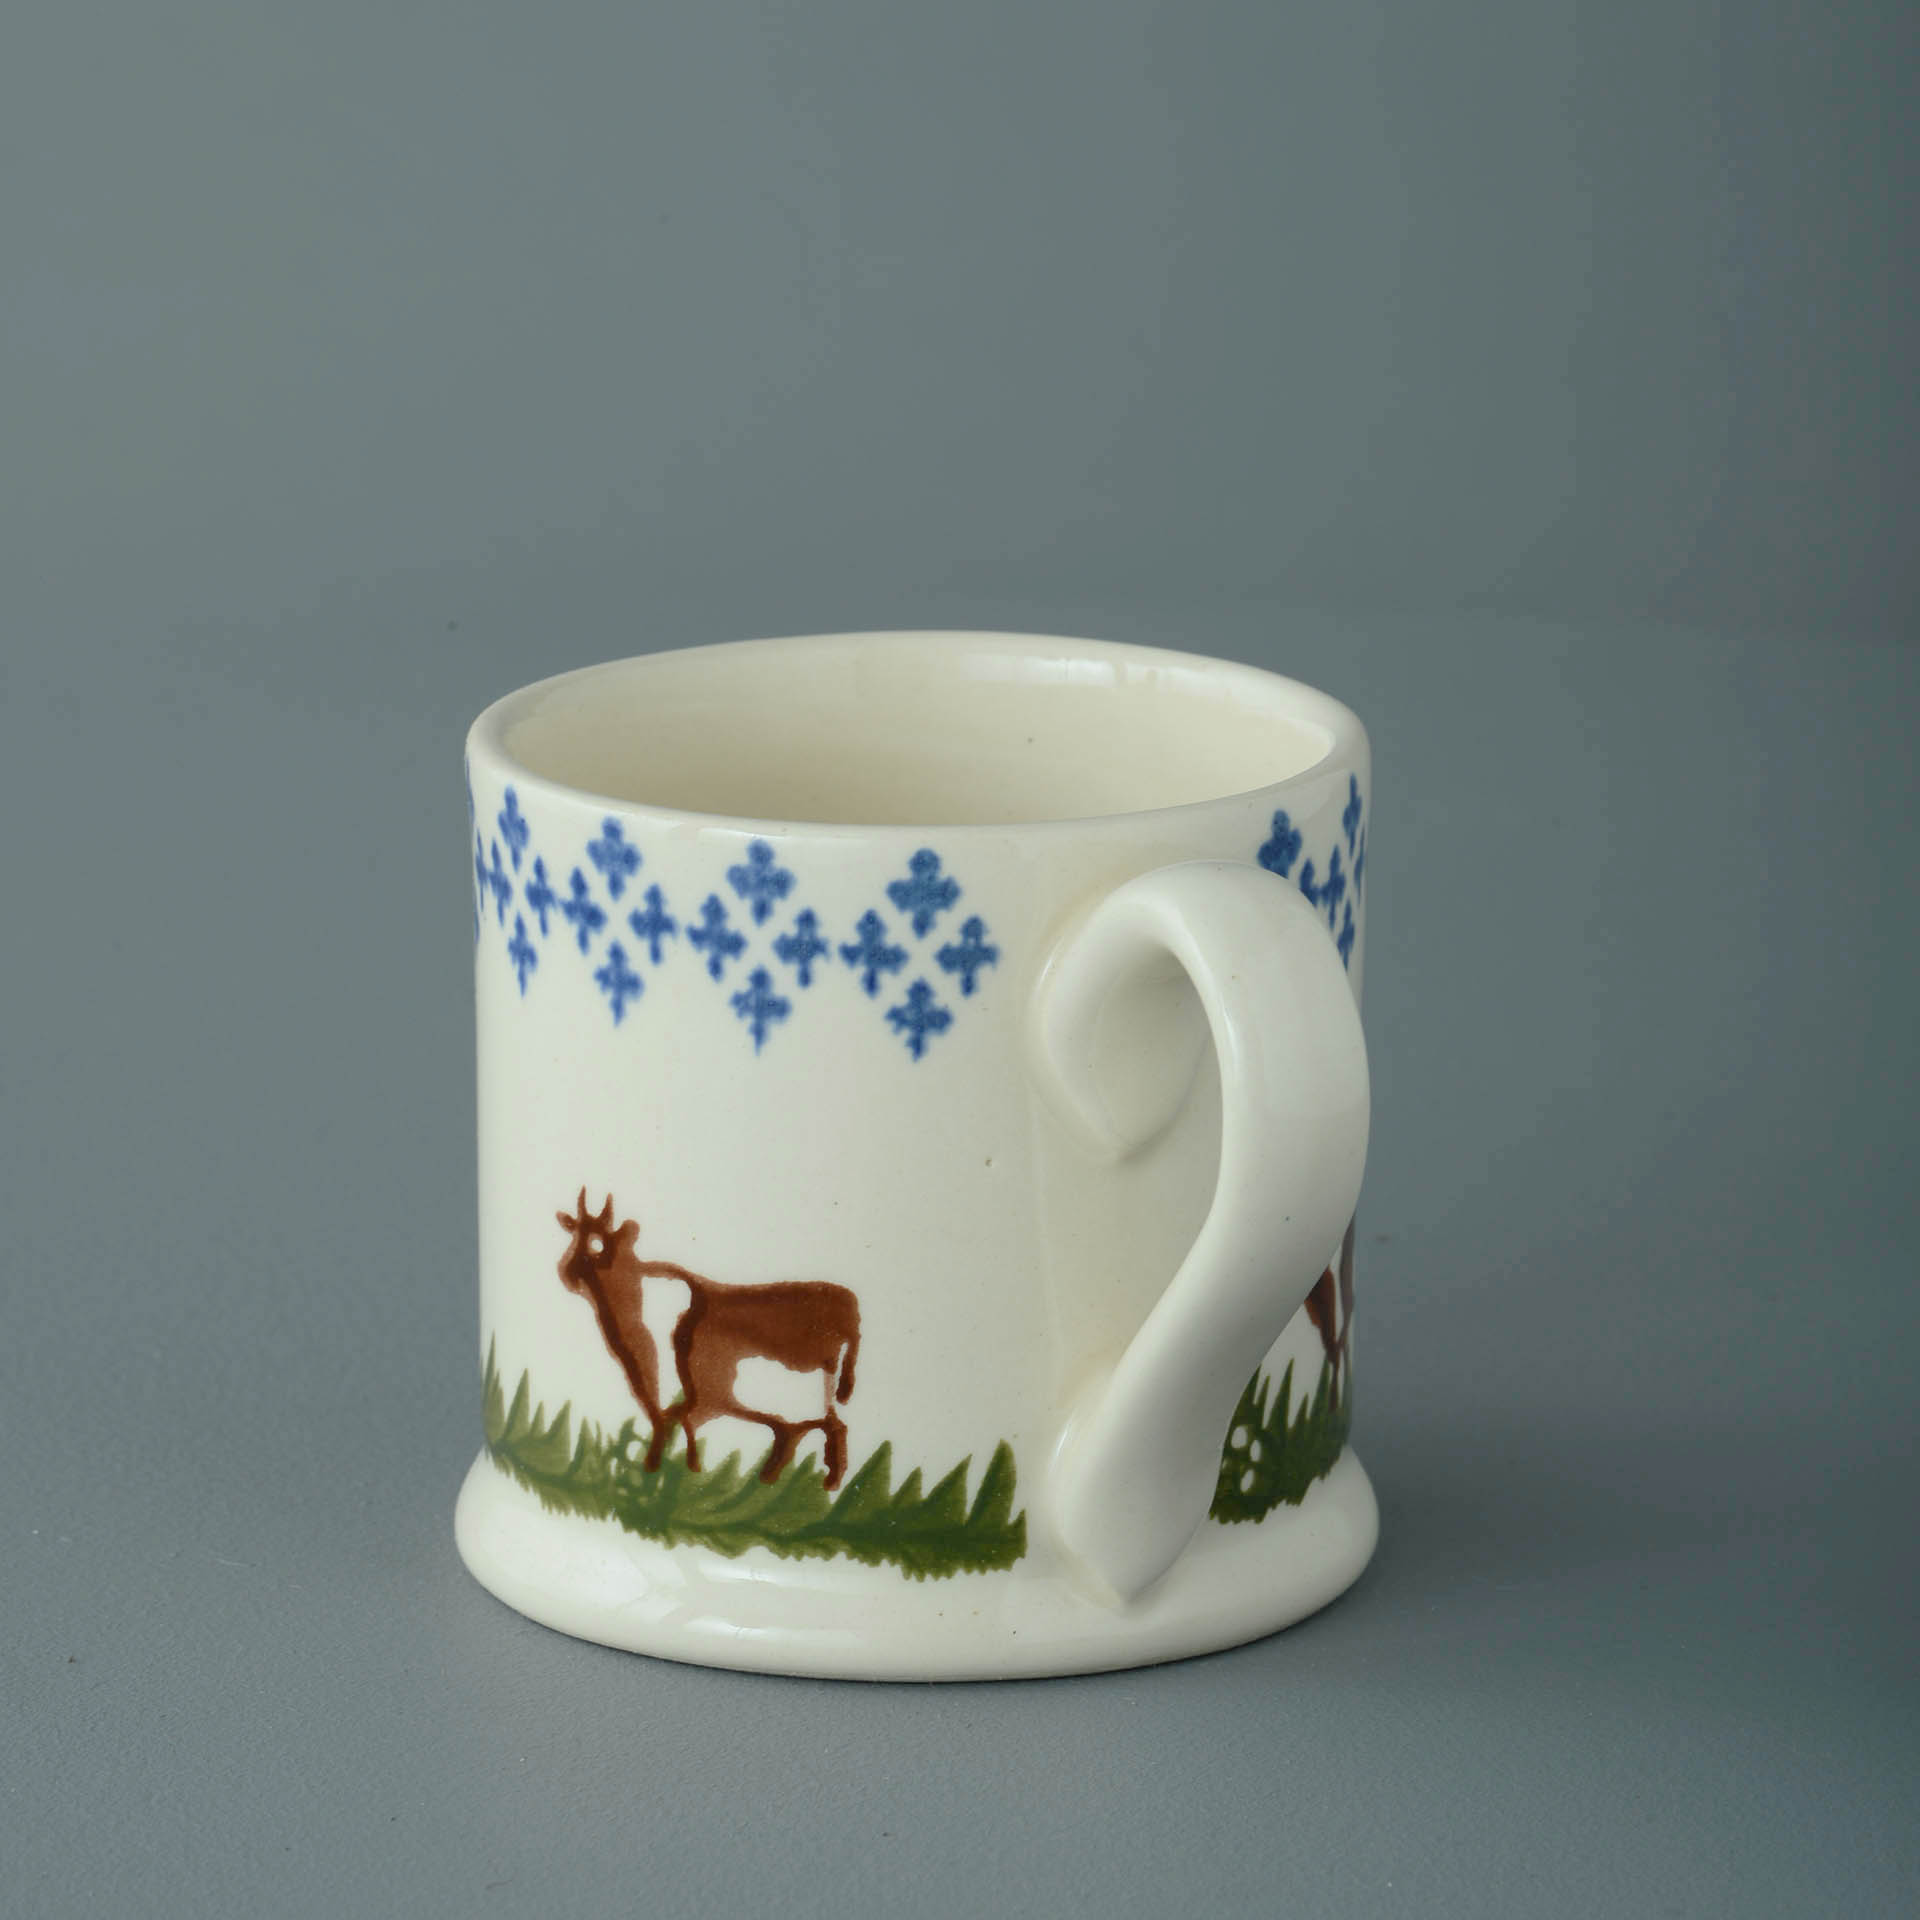 Cows 150ml Small Mug 7 x 7.3cm